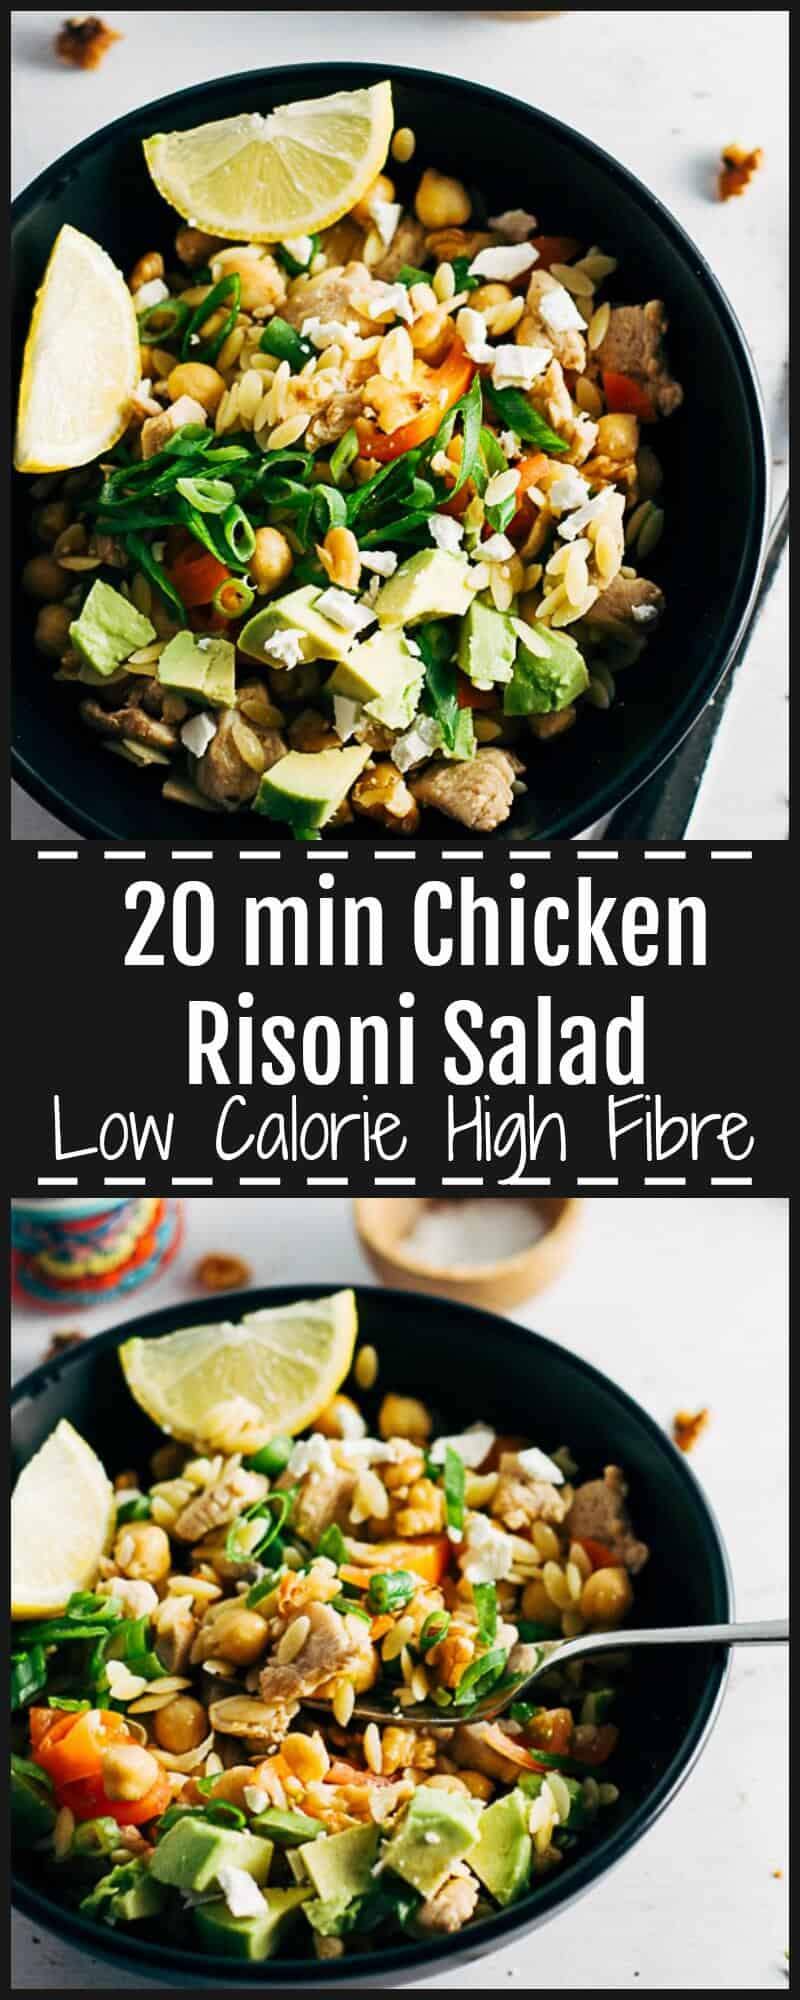 This Chicken Risoni Salad is light, refreshing, tangy and filling with walnuts, avocado & fetta. High in Fibre & protein & low in calories. Lunch or Dinner.